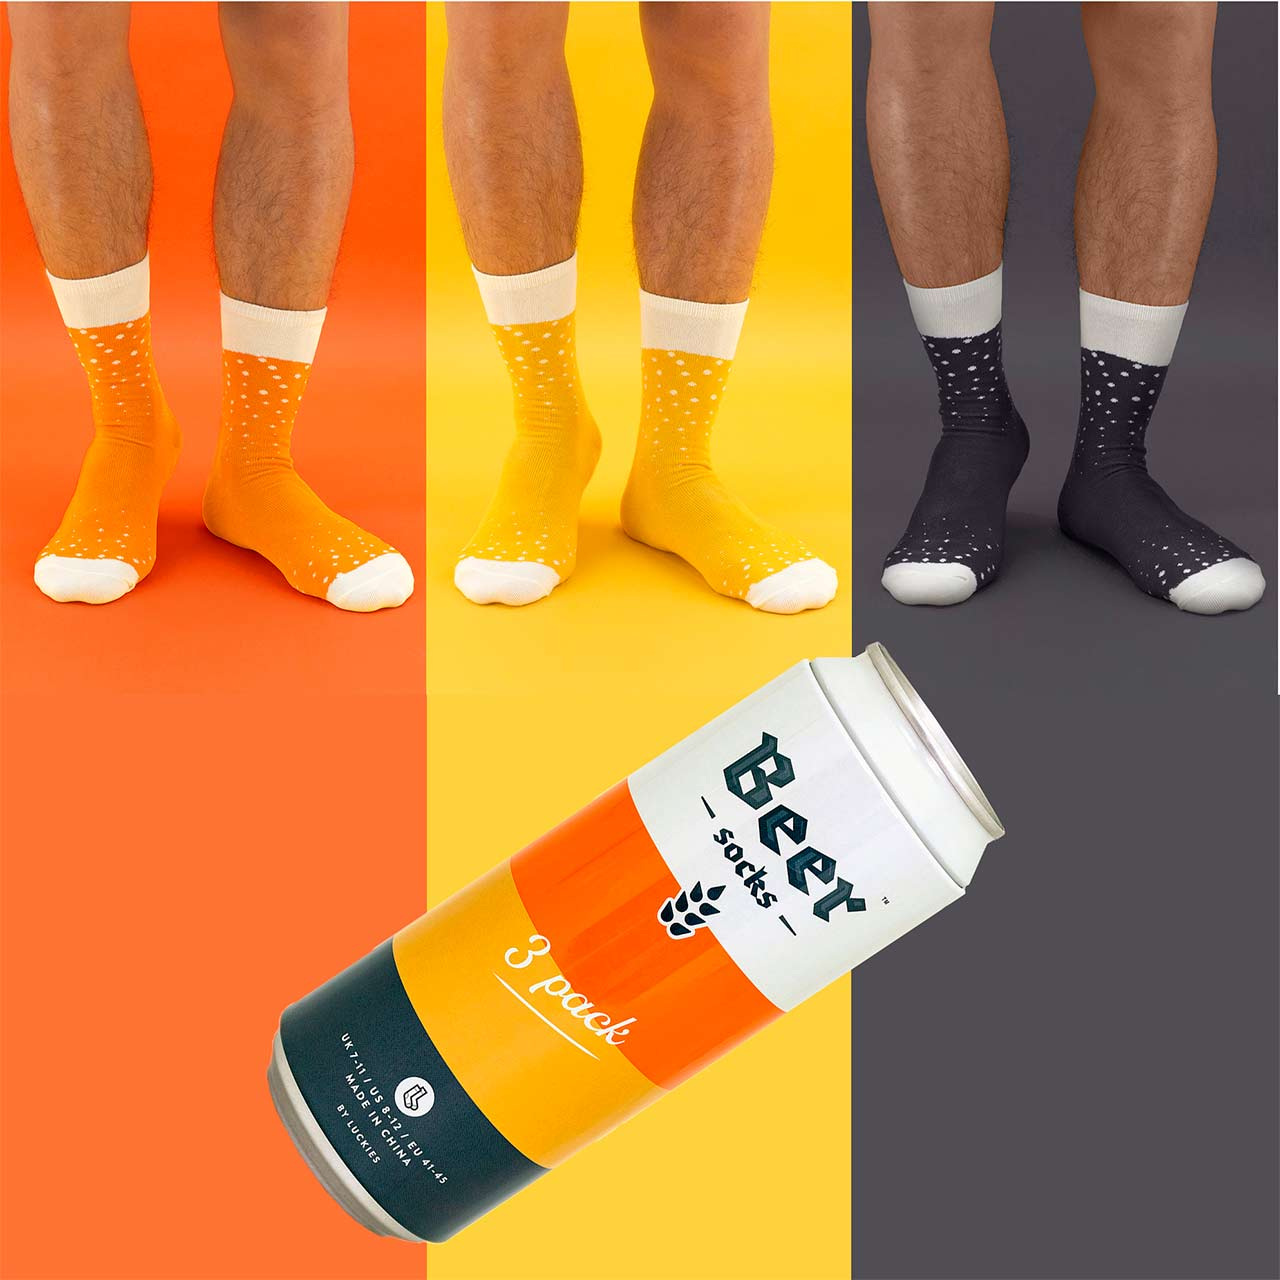 Luckies Men's Beer Socks 3 Pack | The Design Gift Shop